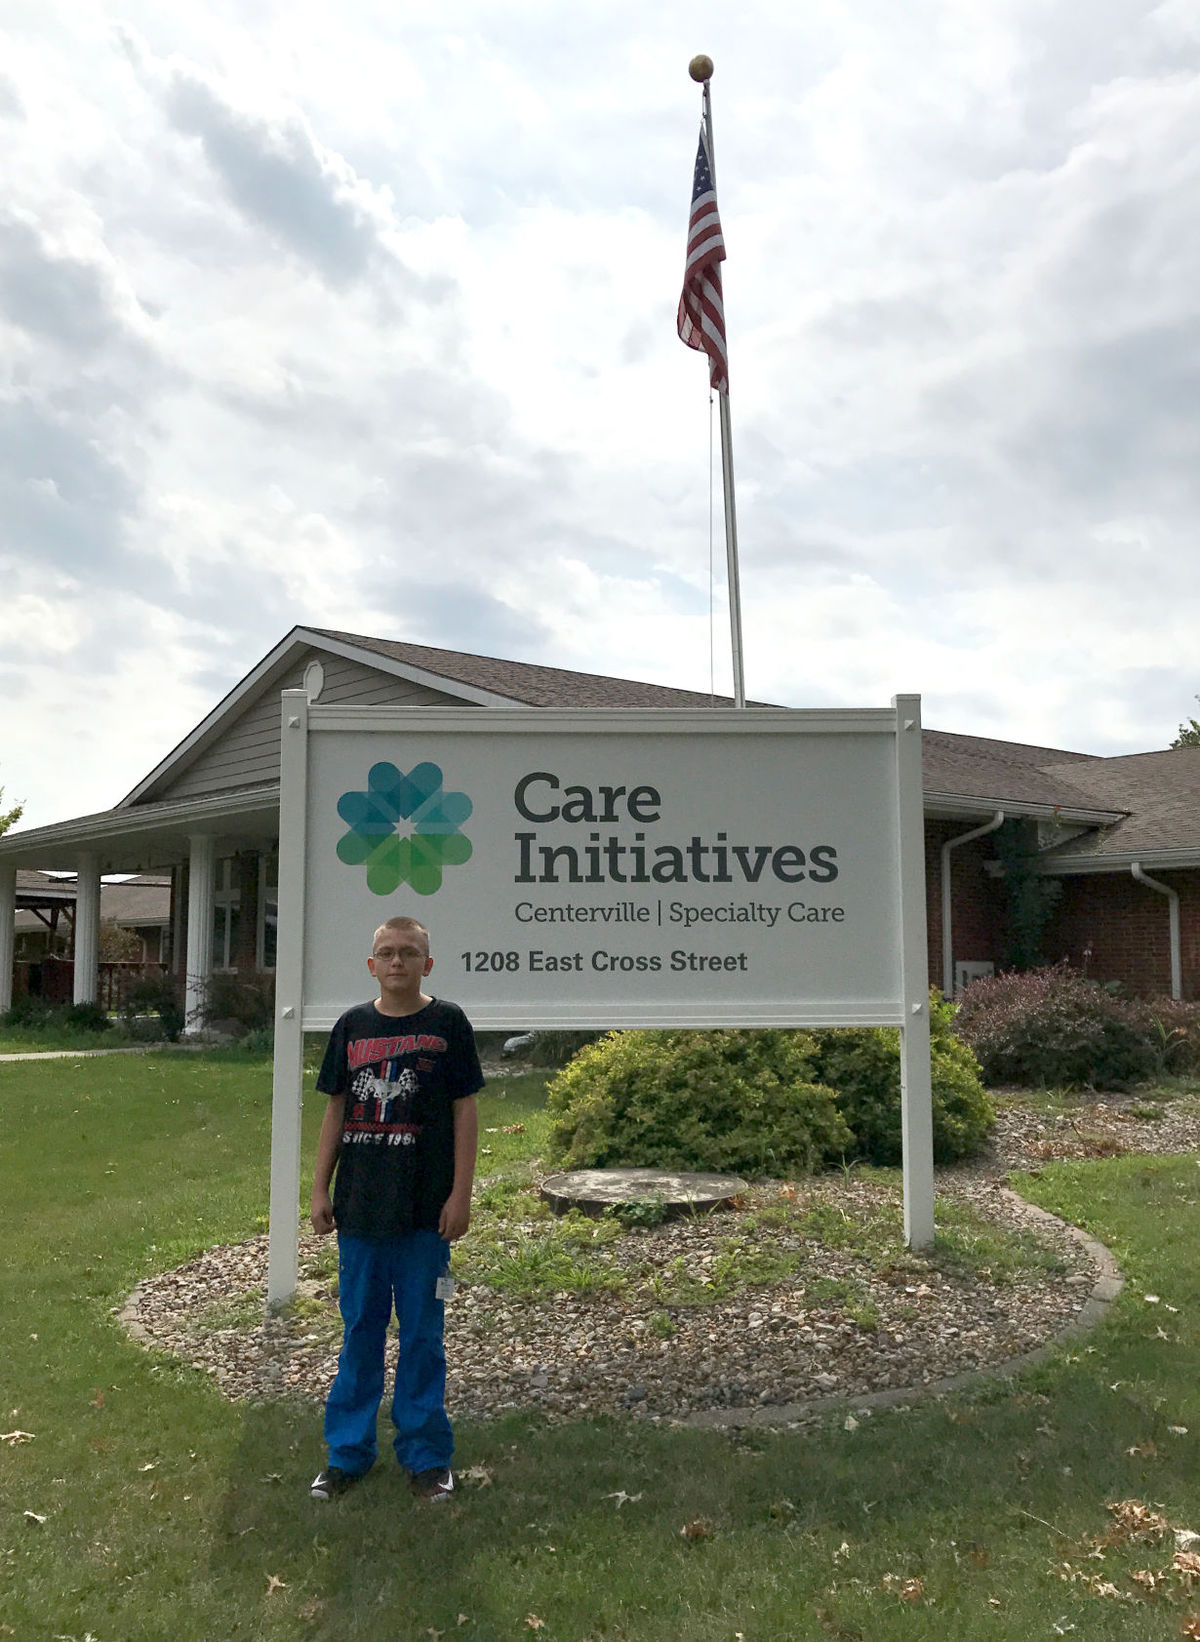 Mason Lund volunteer with Centerville Specialty Care